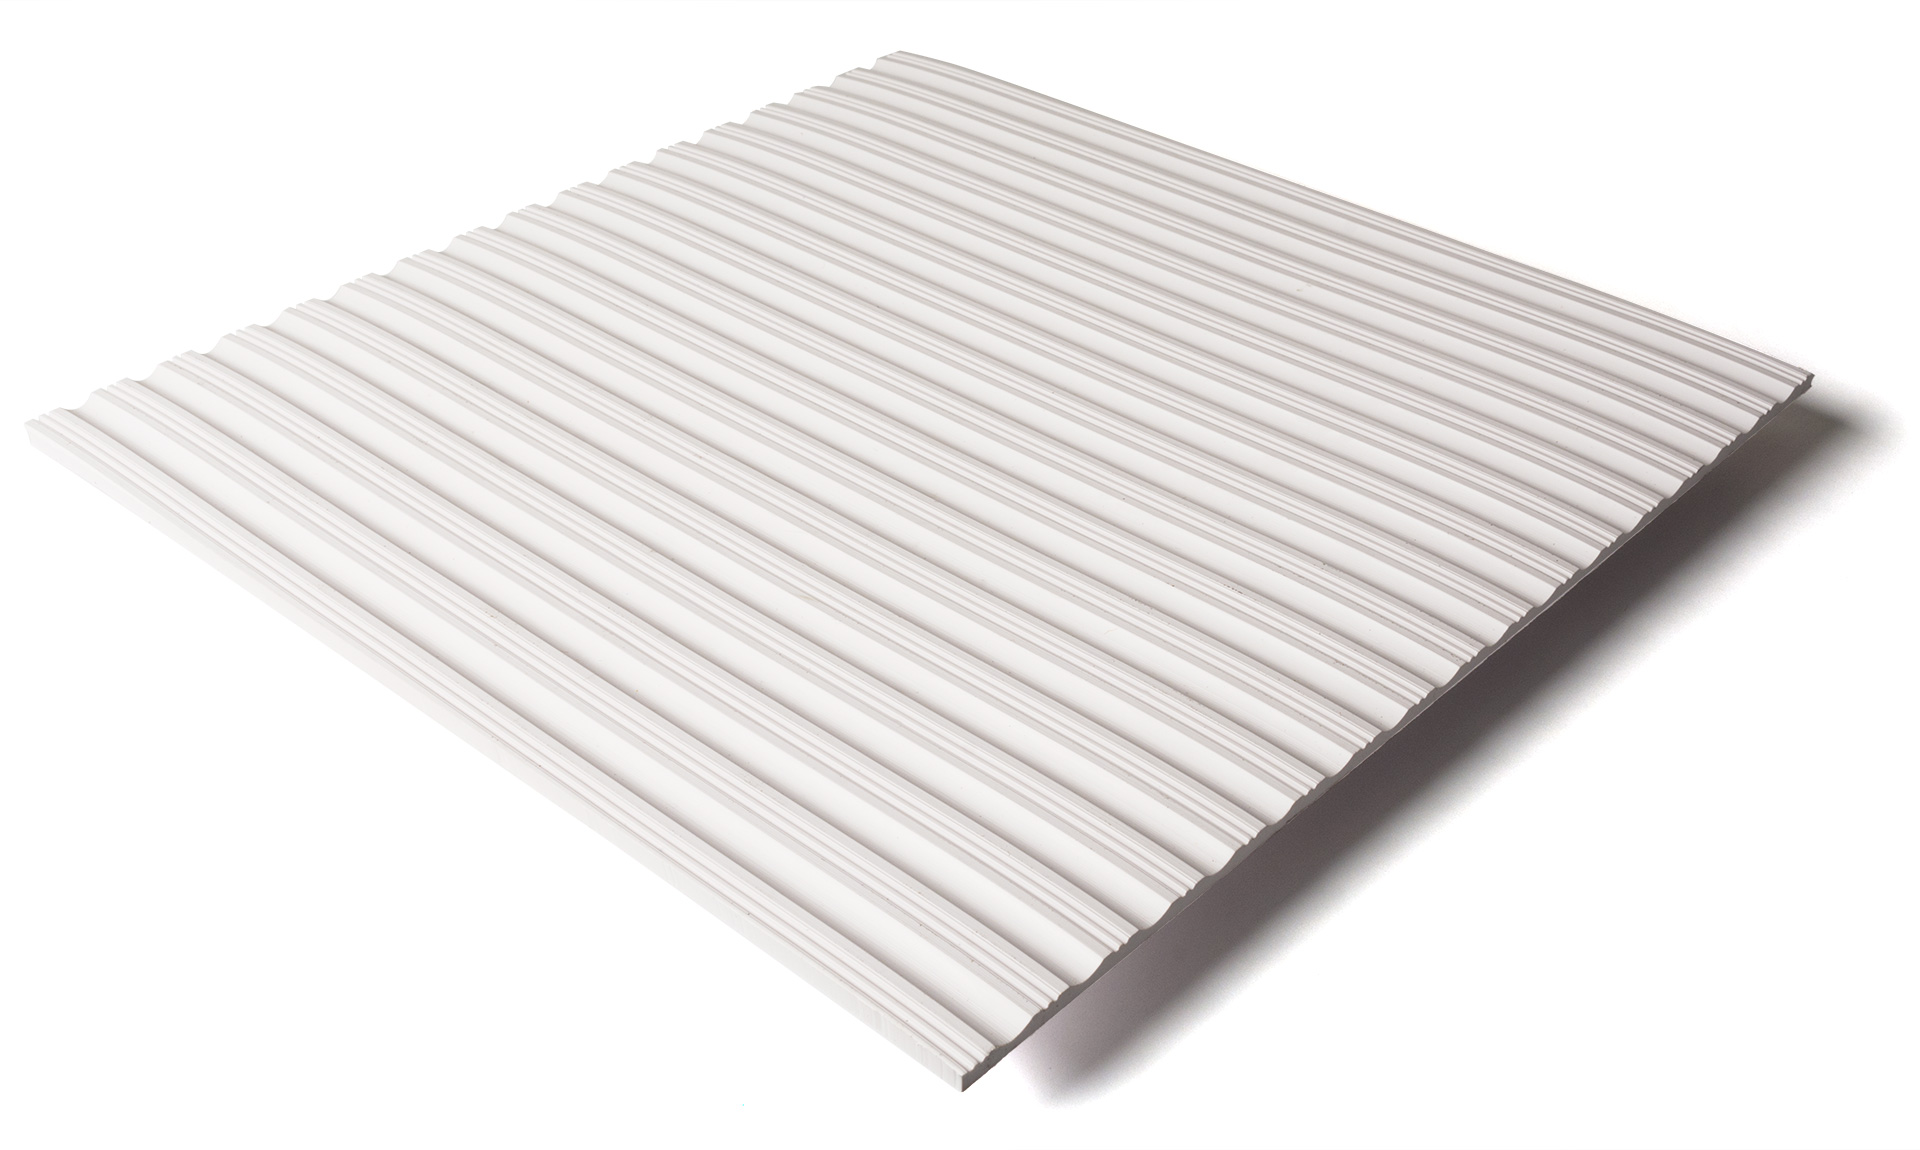 Standard transit flooring in white, ribbed